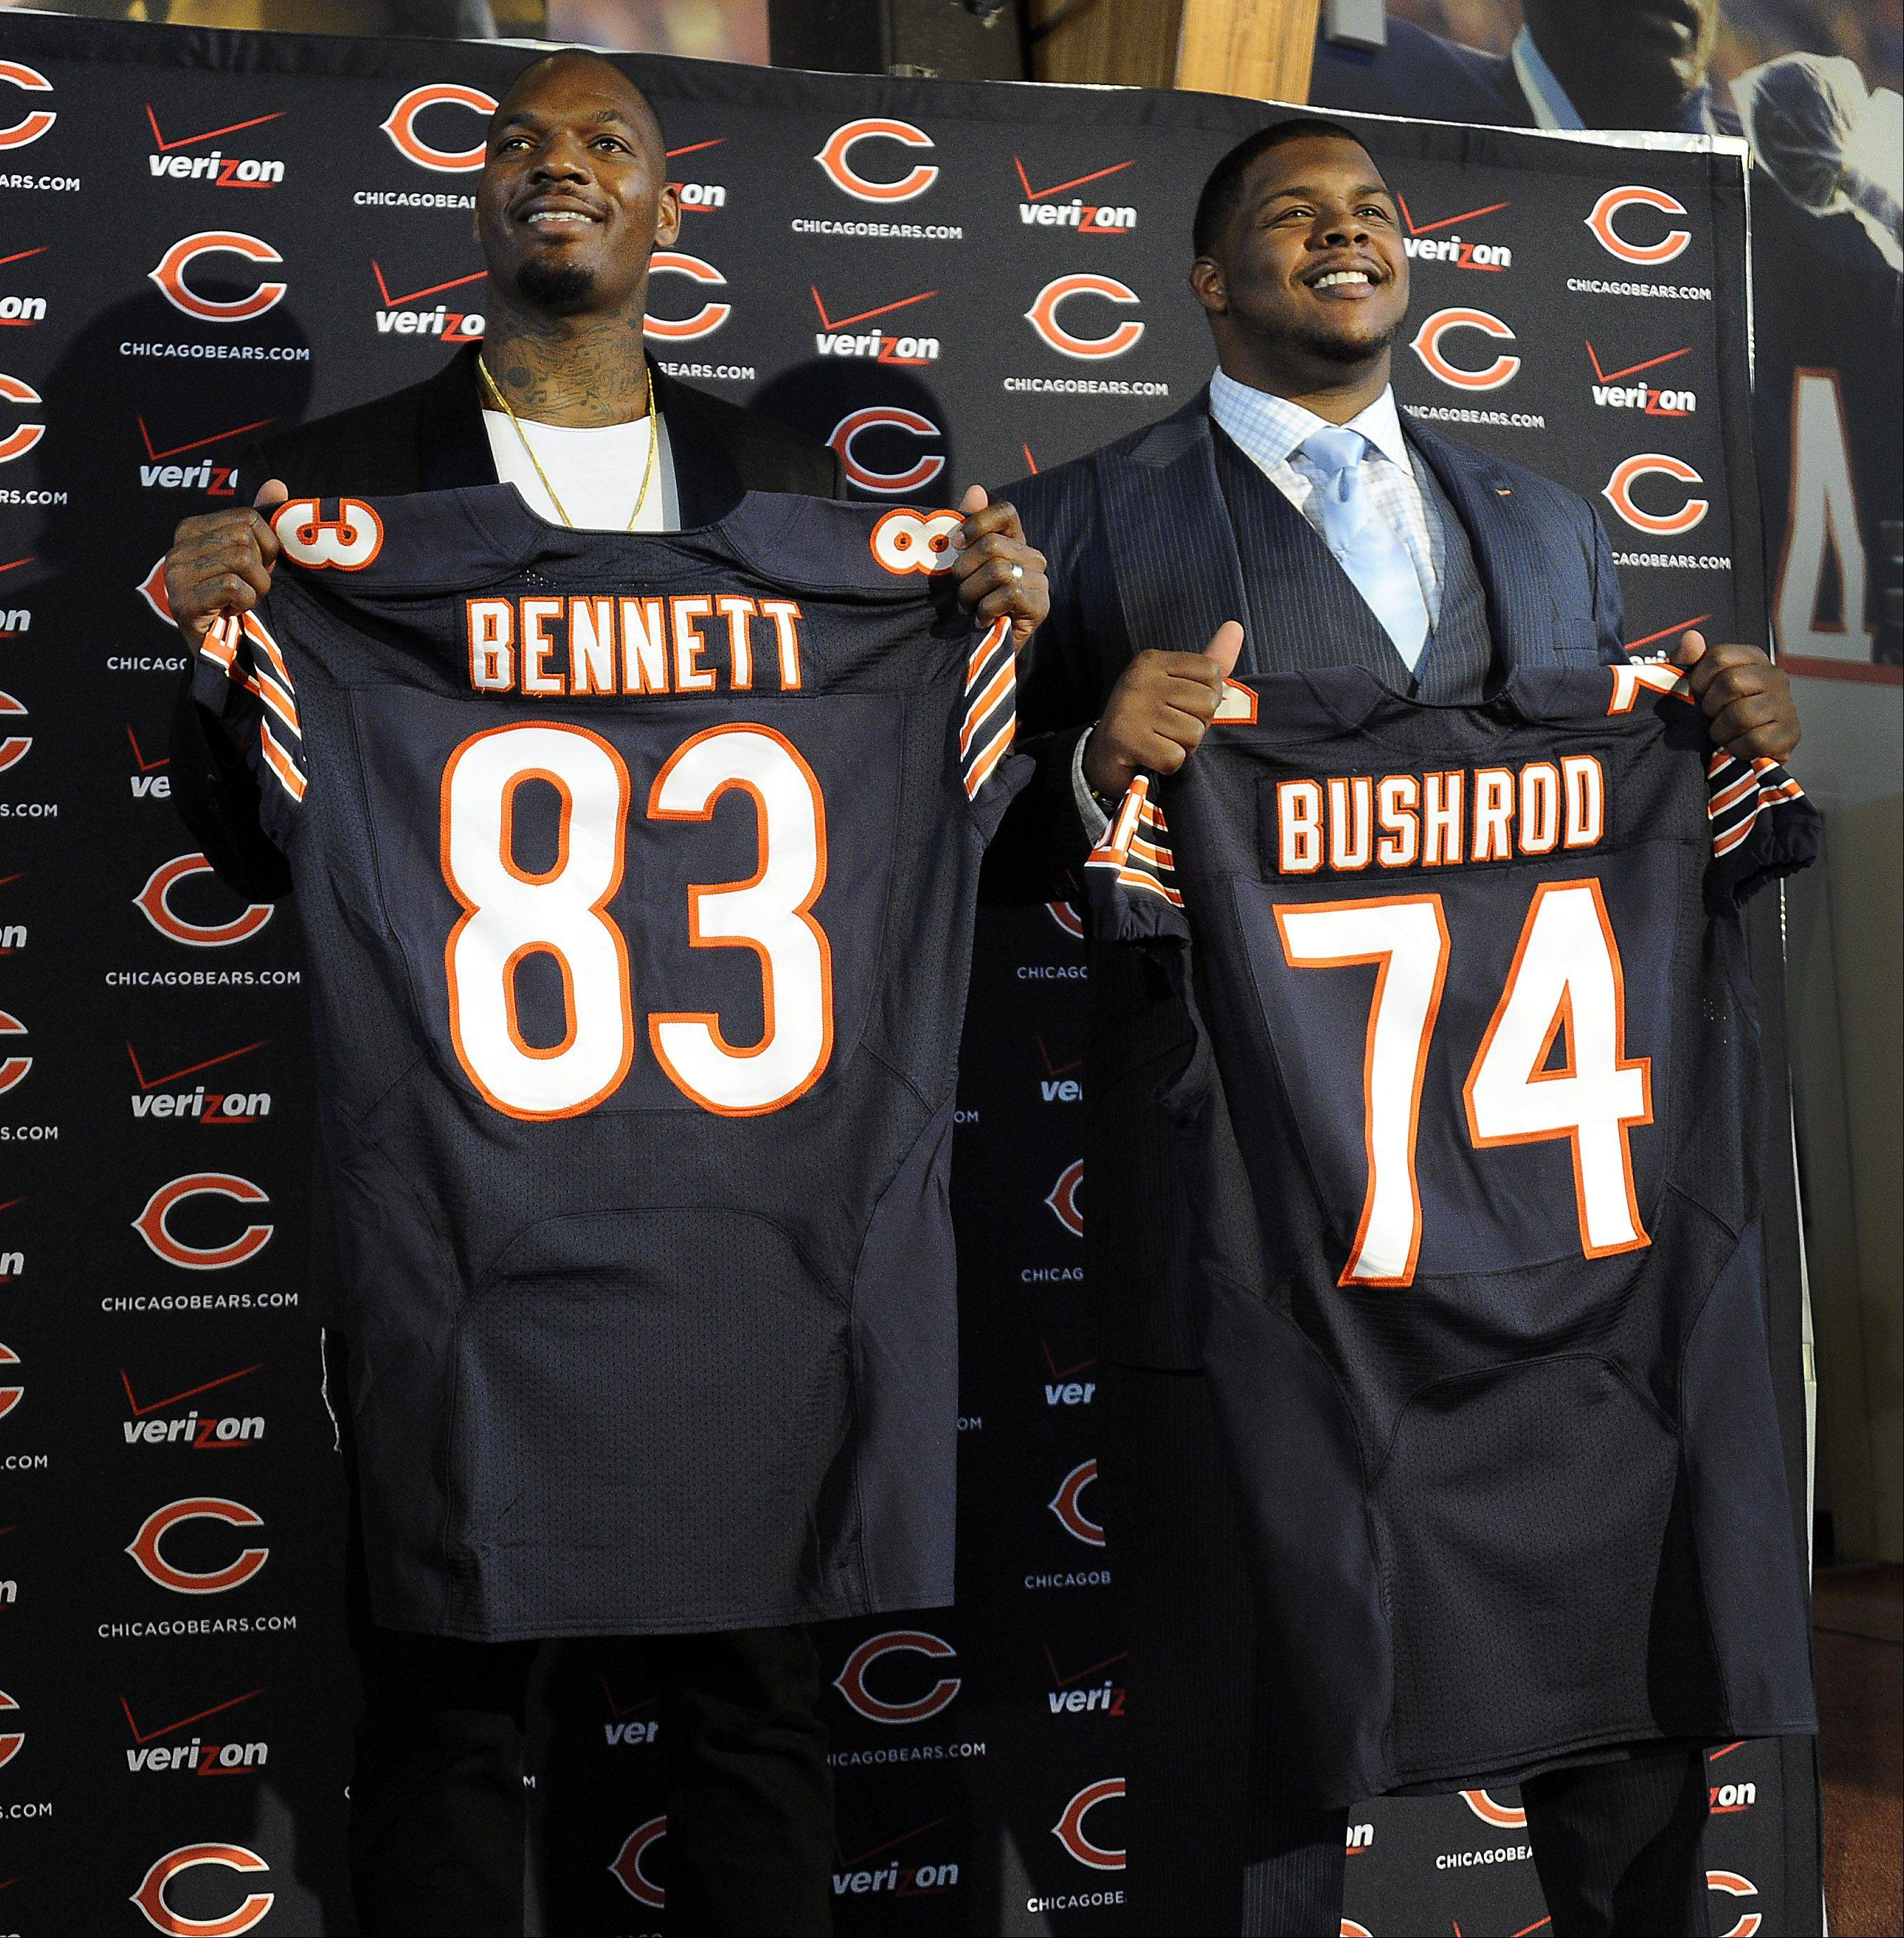 Martellus Bennettm left and Jermon Bushrod display their Bears jerseys earlier this year.